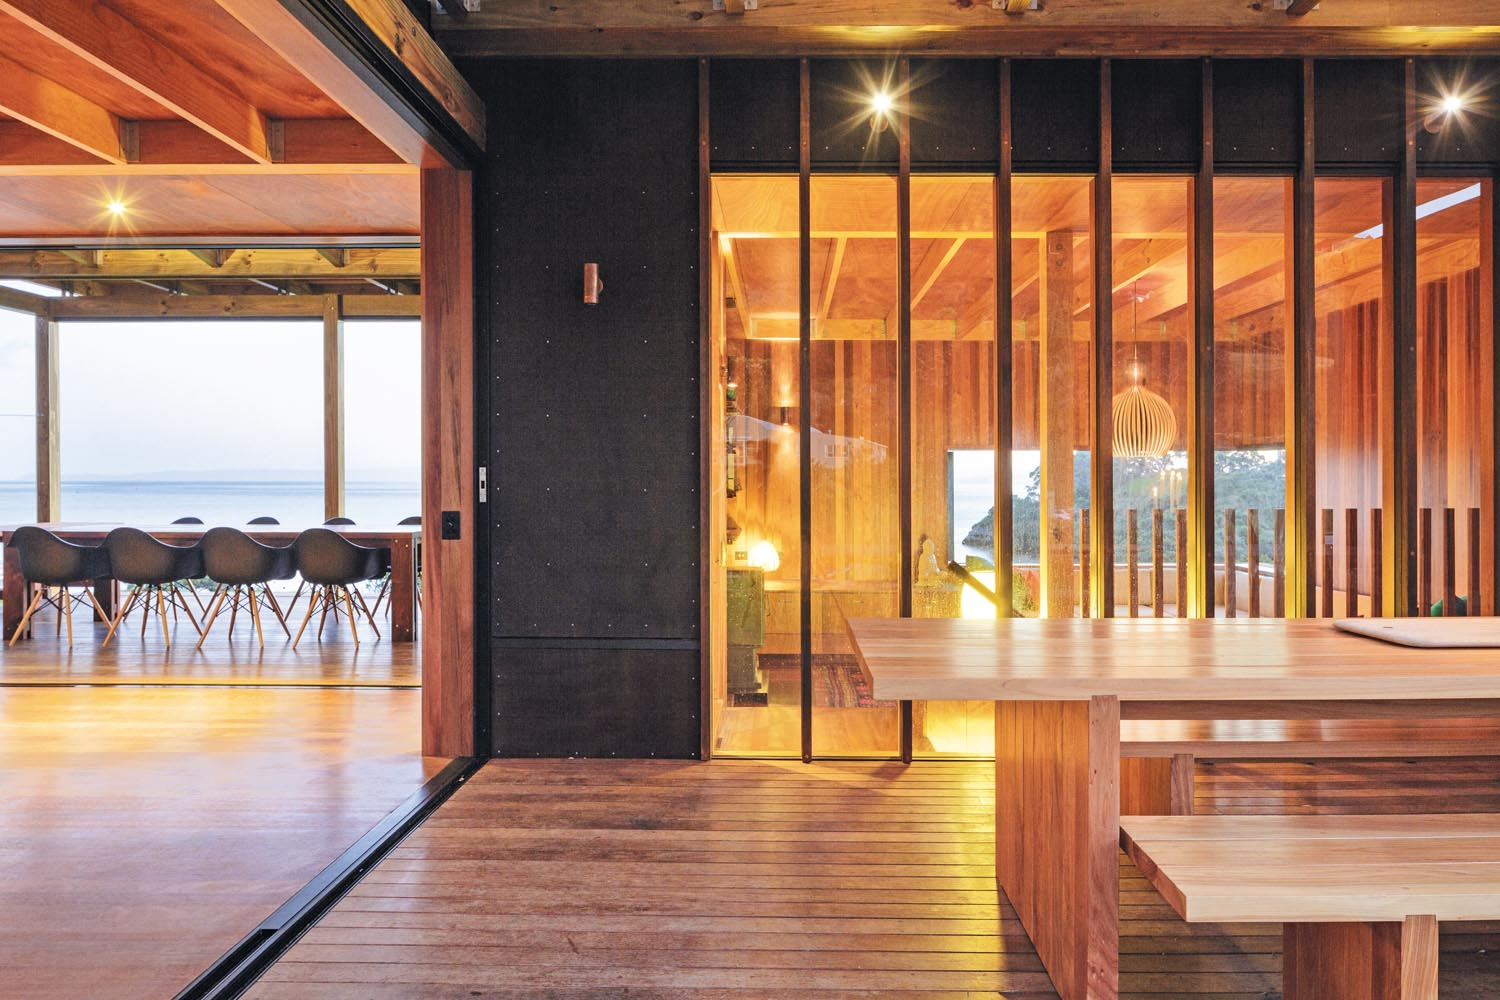 The living pavilion has spectacular views over Whangarei Heads in New Zealand's NorthlandGRAND